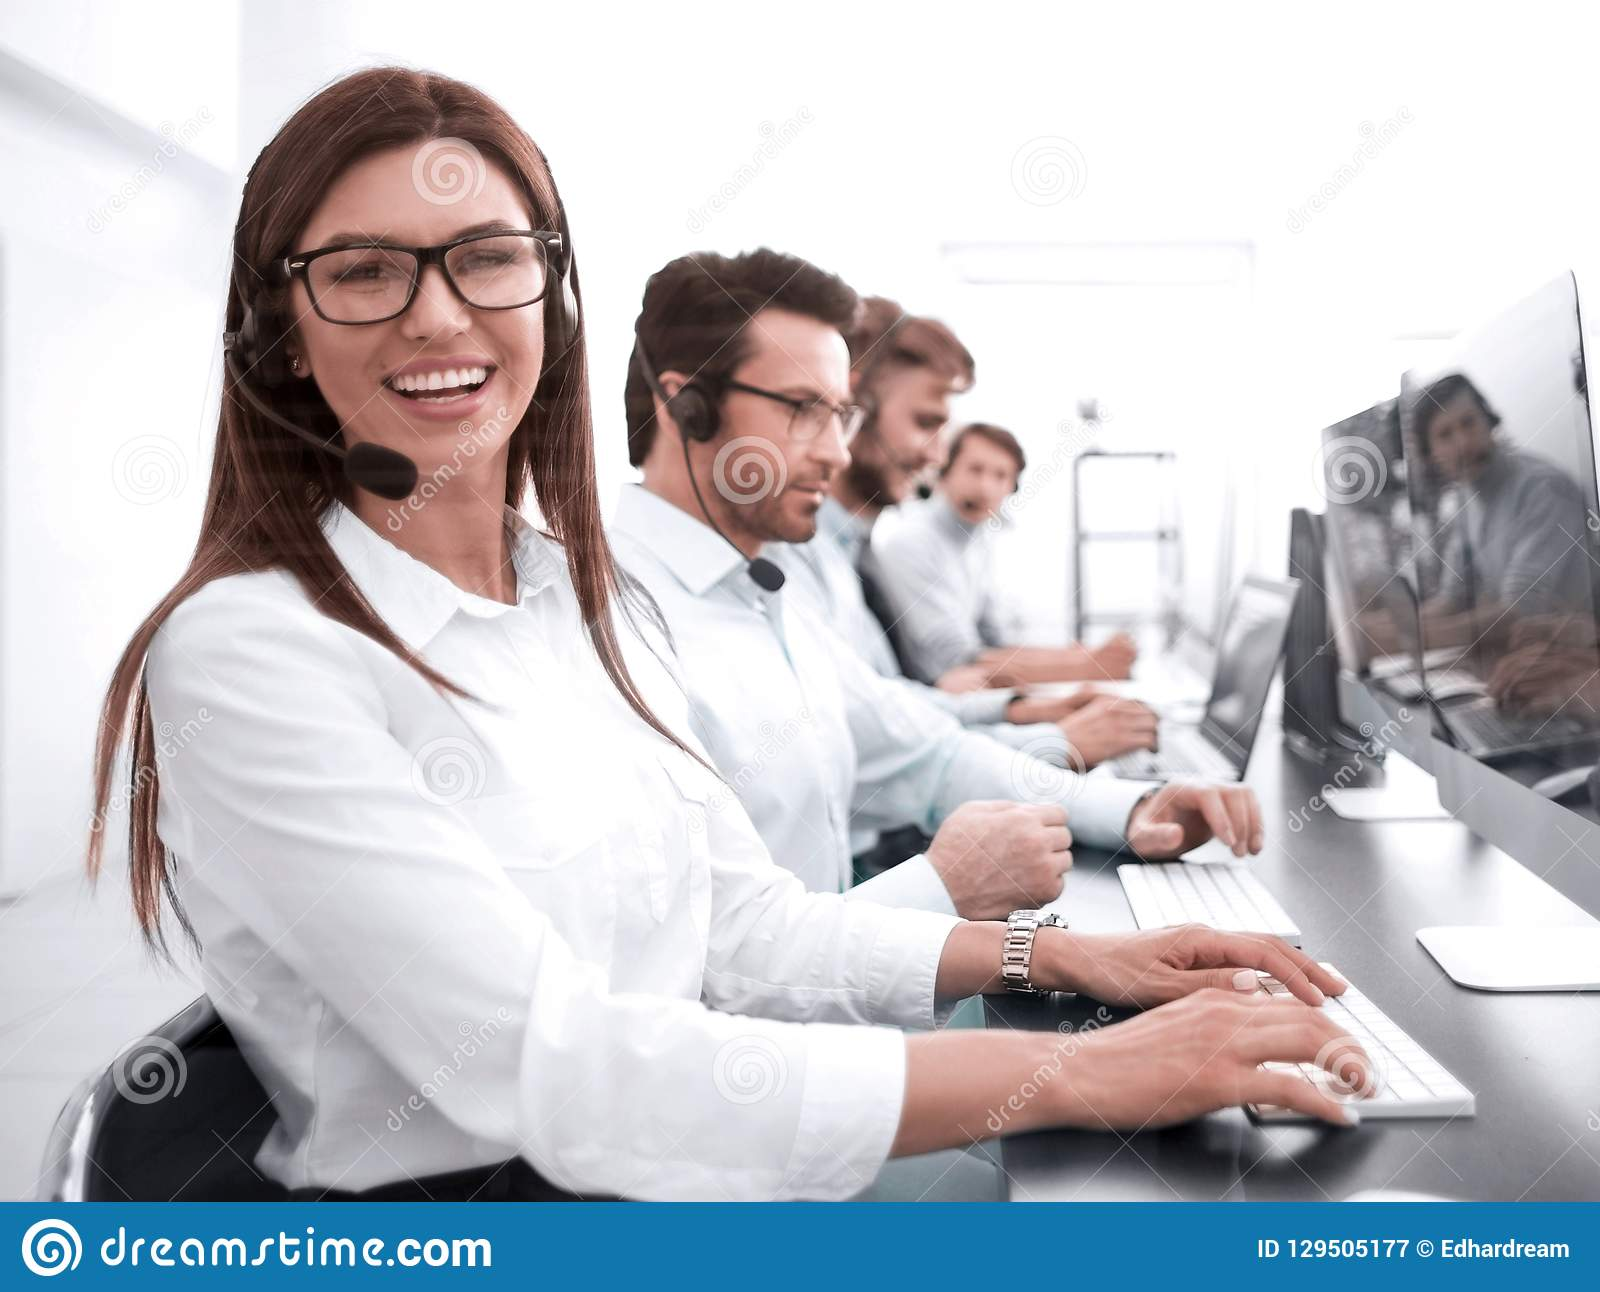 Woman operator in the workplace at the call center